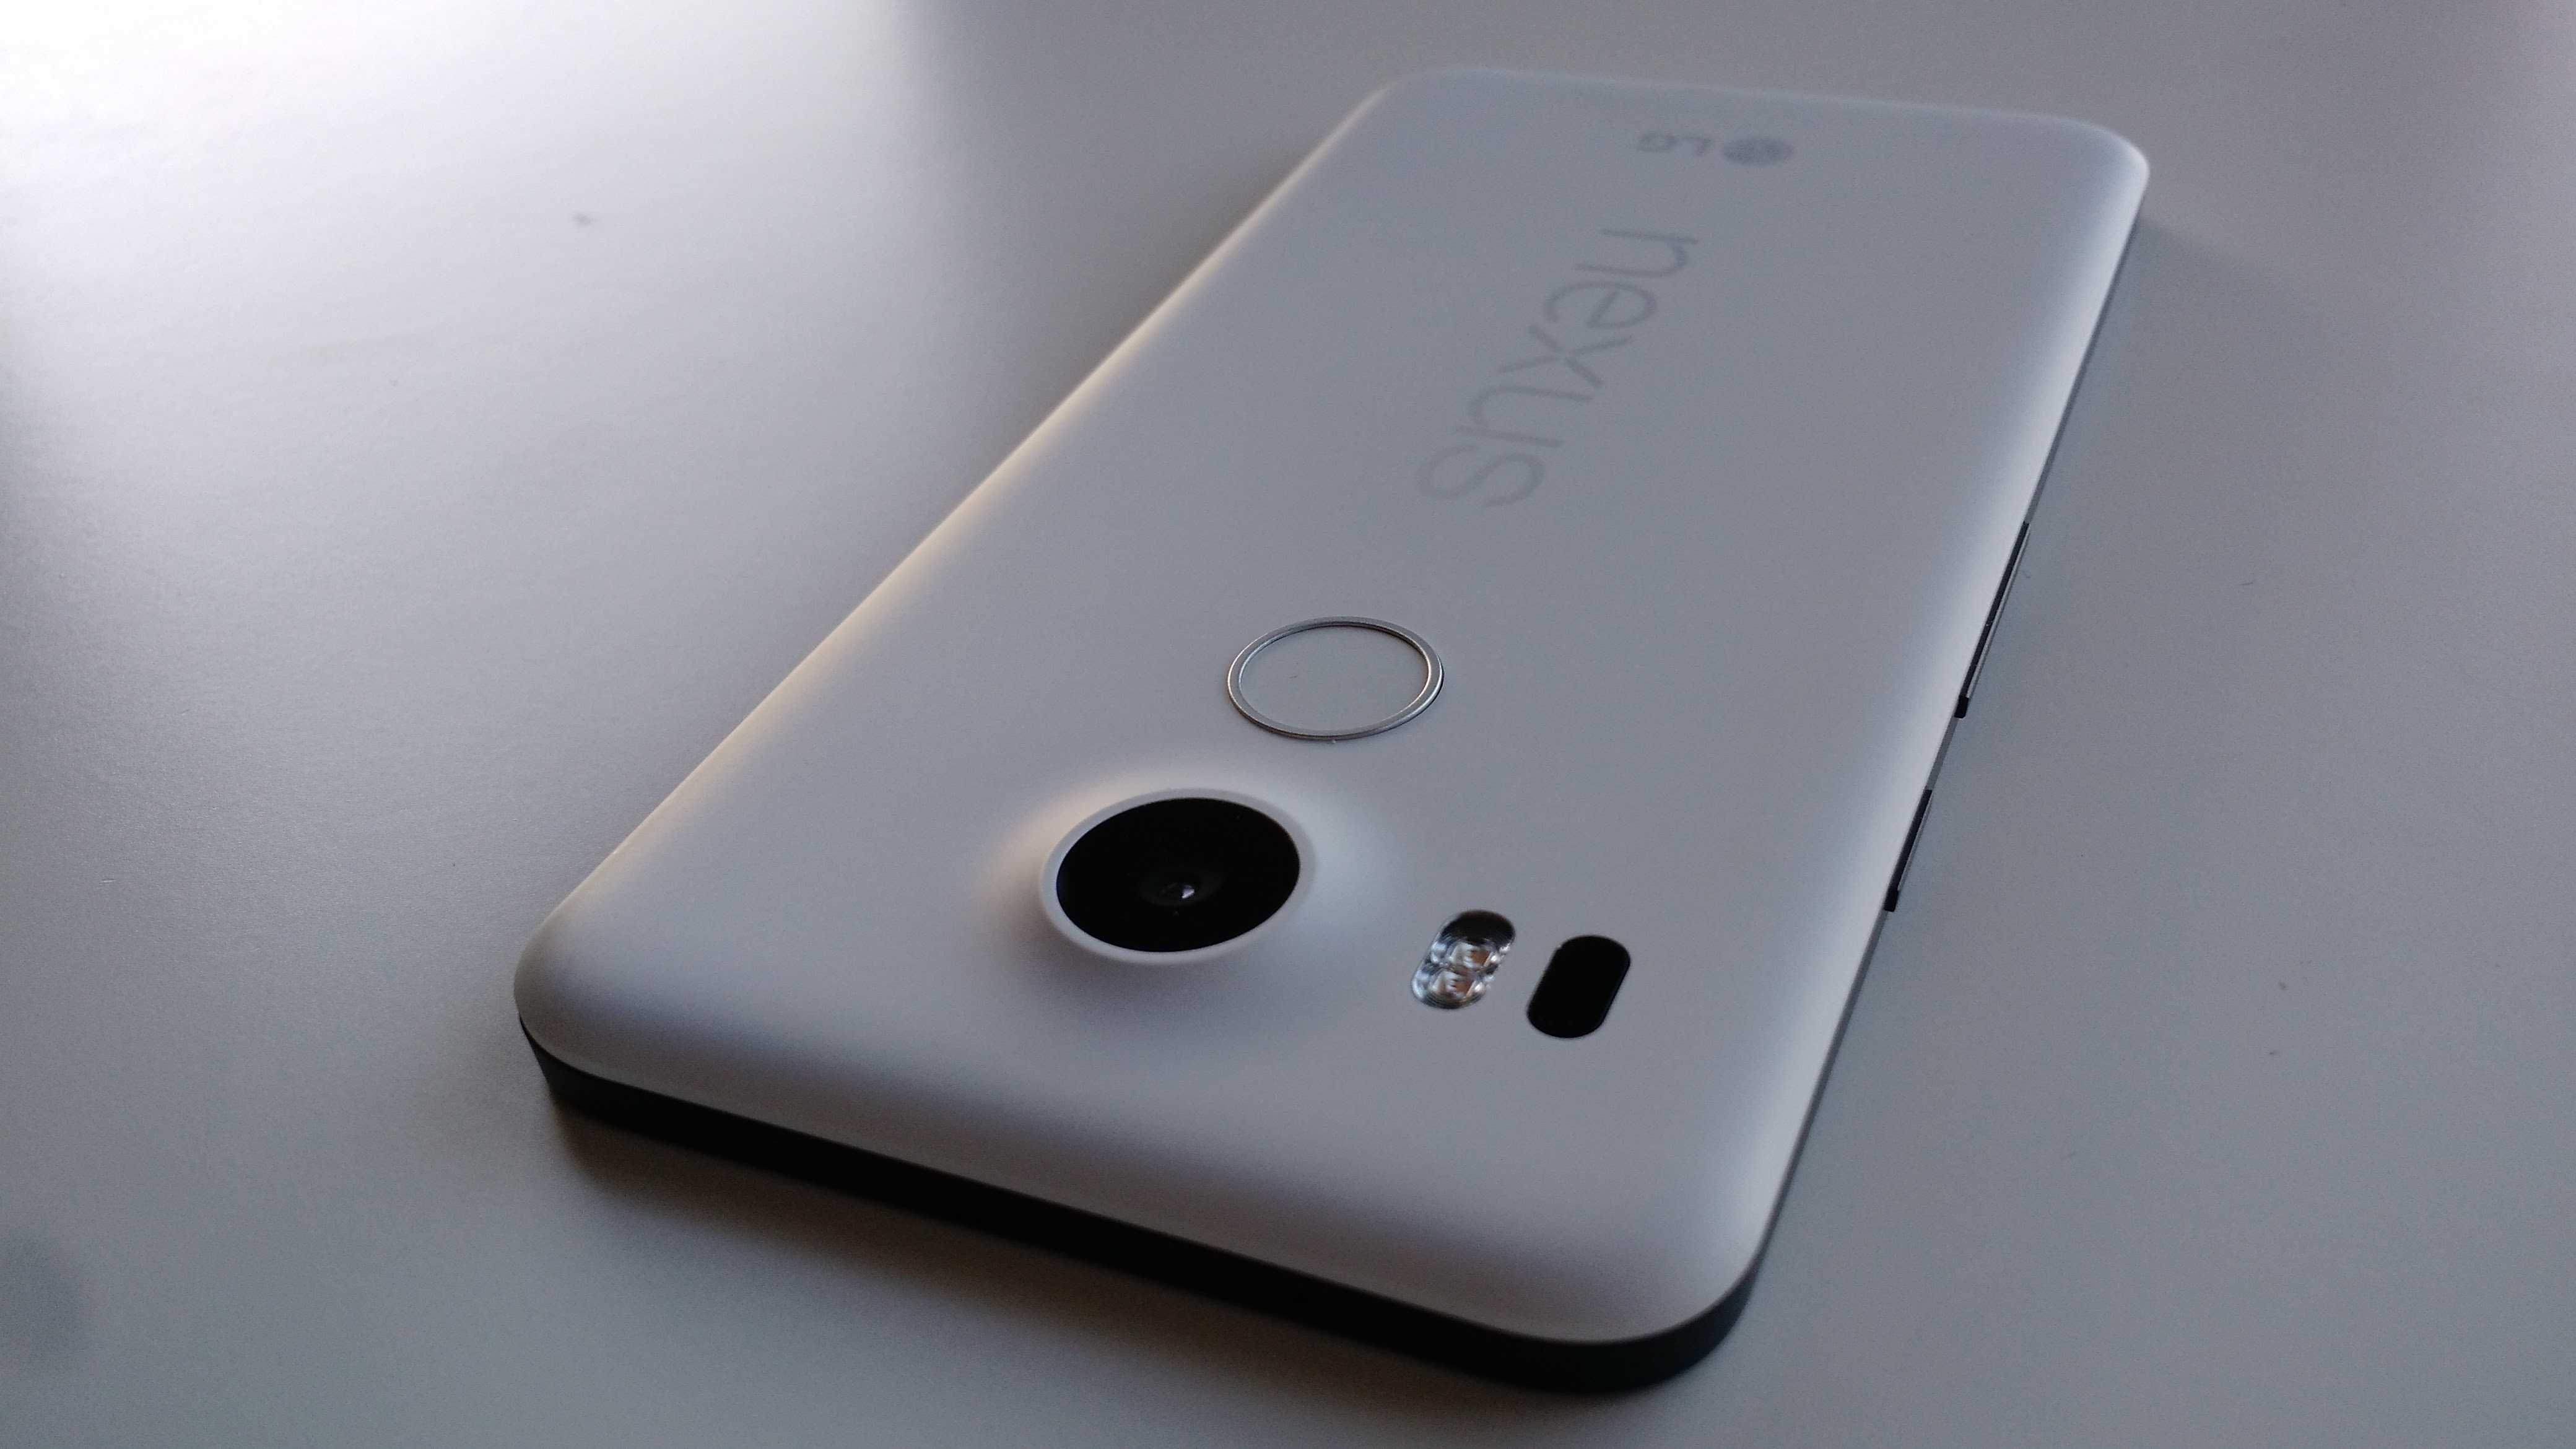 The back of the Nexus 5X.